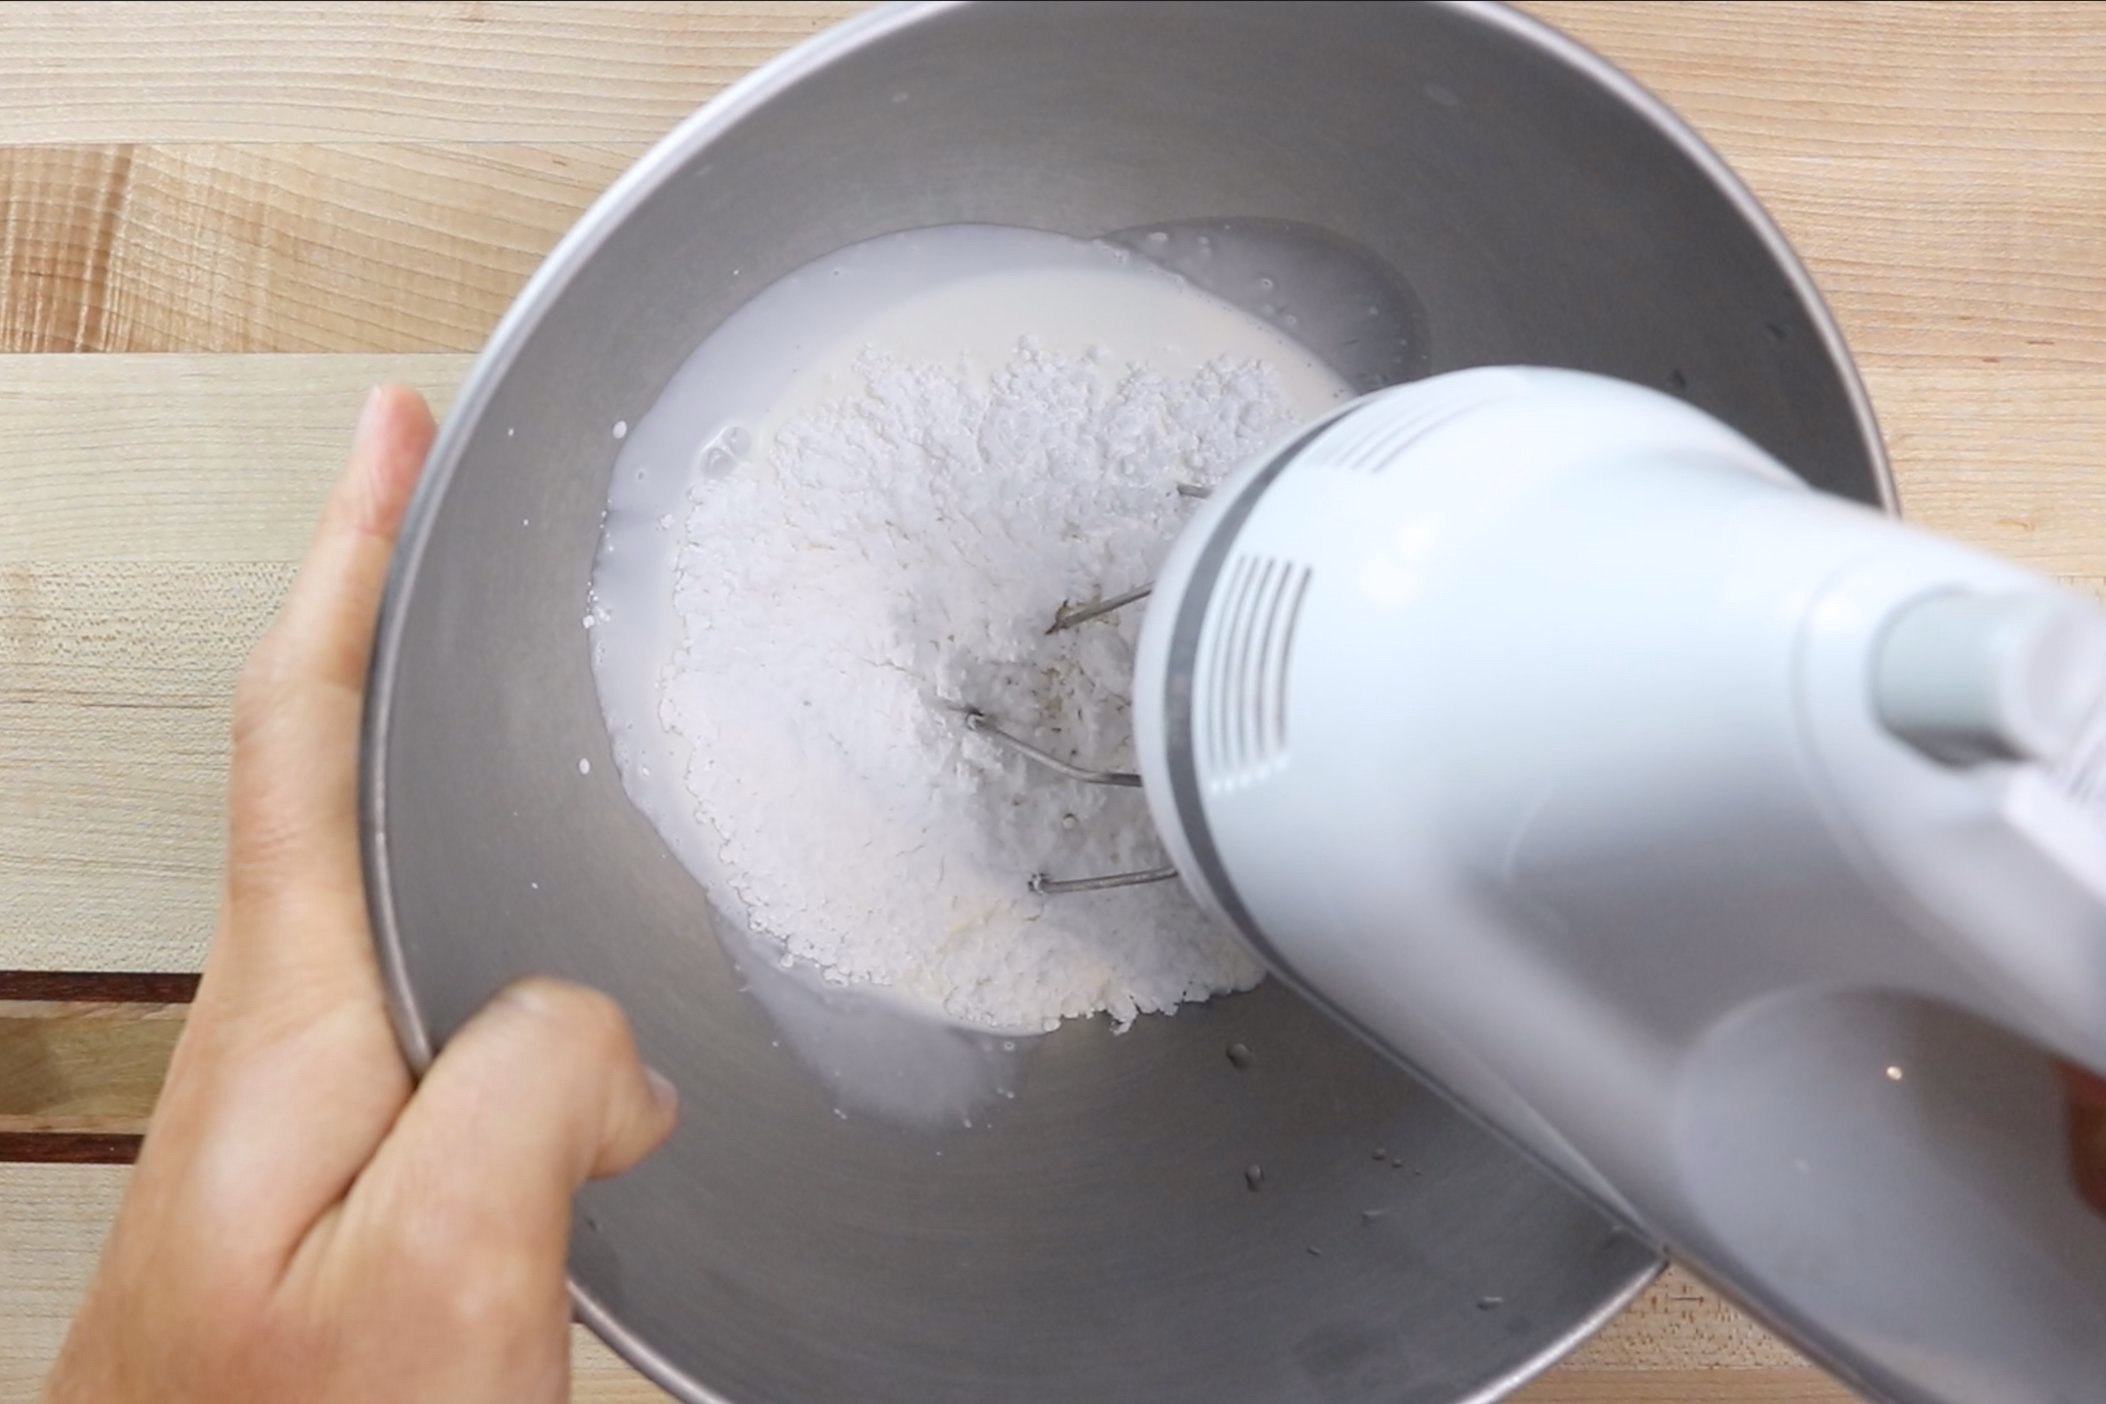 5. Make the whipped cream. Place mixer bowl in freezer for at least 20 minutes to chill. Pour heavy whipping, powdered sugar and vanilla into the cold bowl. -